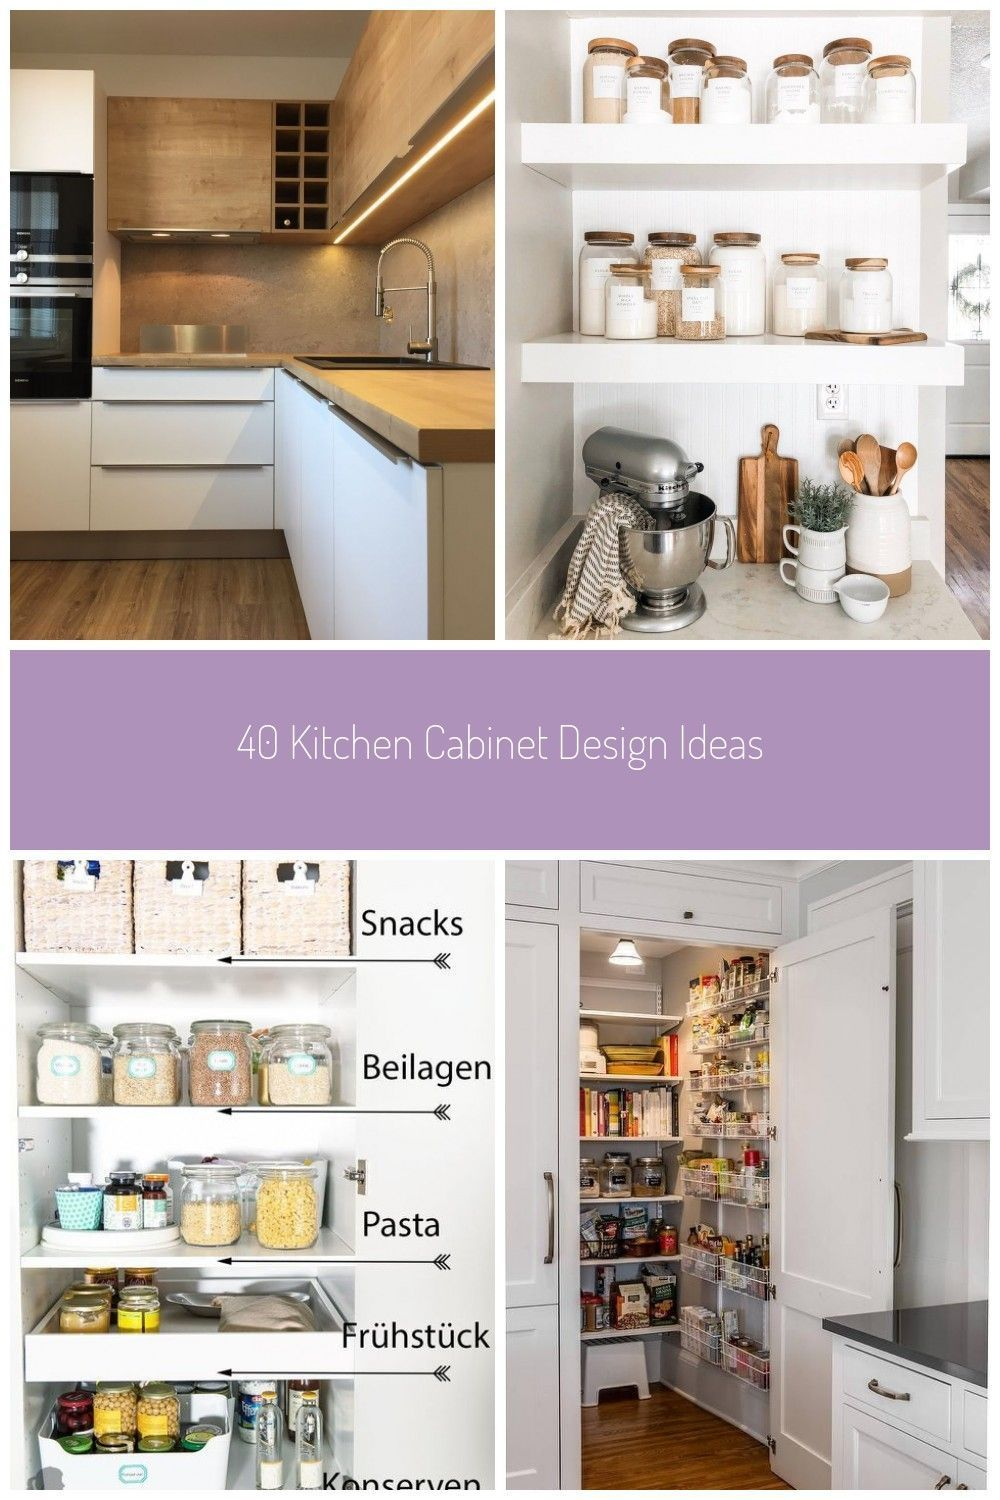 40 Kitchen Cabinet Design Ideasa Stylish Addition To Any Pantry These Sticker Addition Ca Kitchenp Cabinet Design Kitchen Cabinet Design Kitchen Design